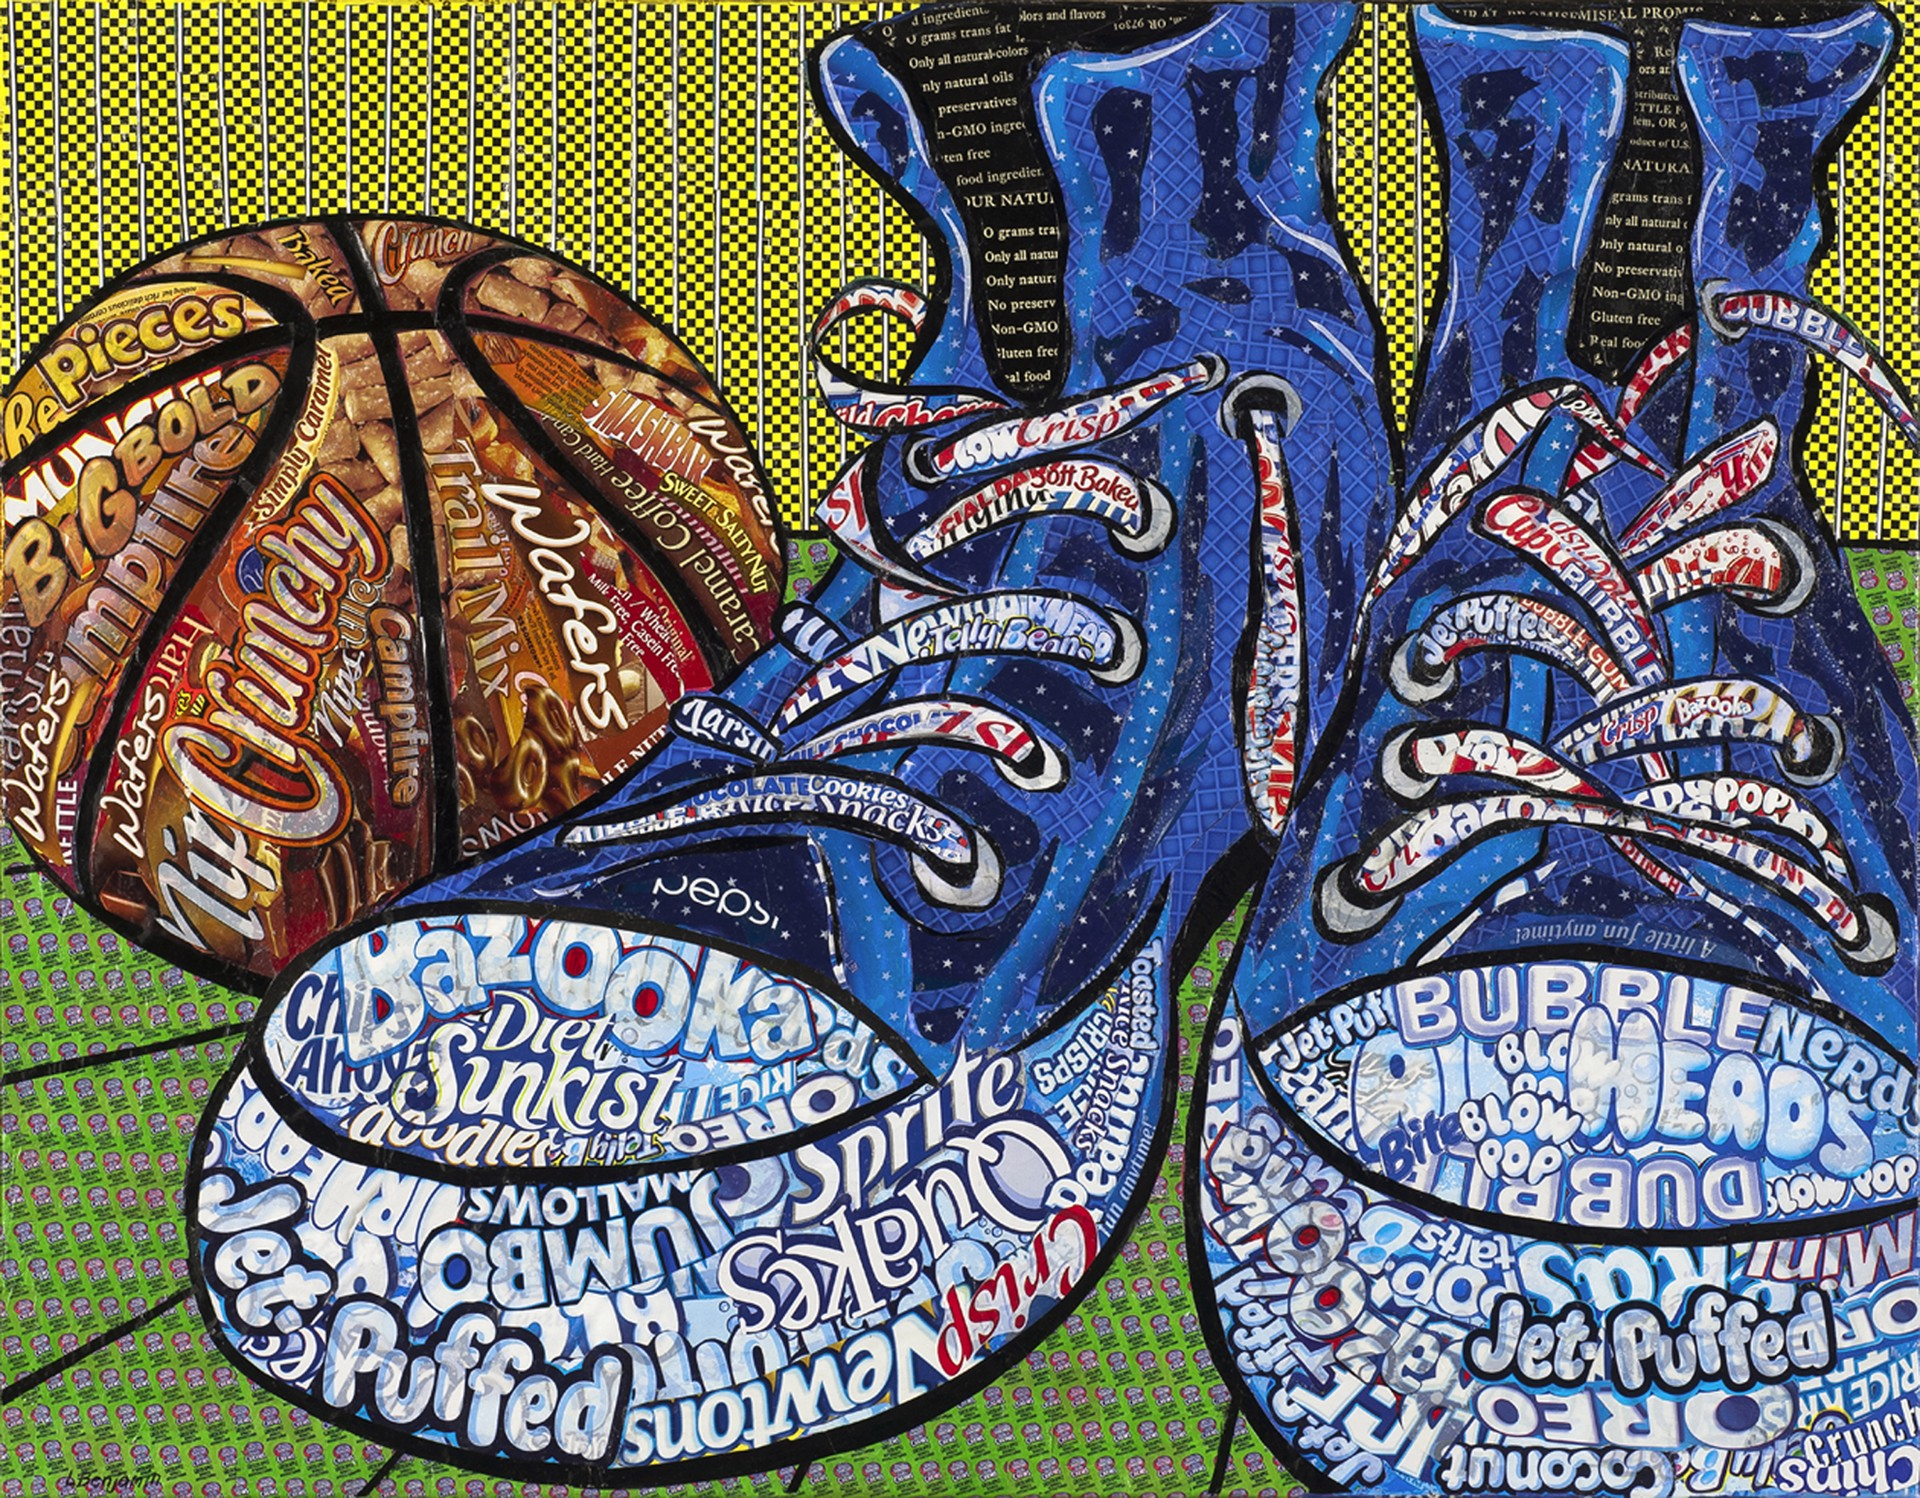 Still Life with Sneakers-Ed 3/40 by Laura Benjamin